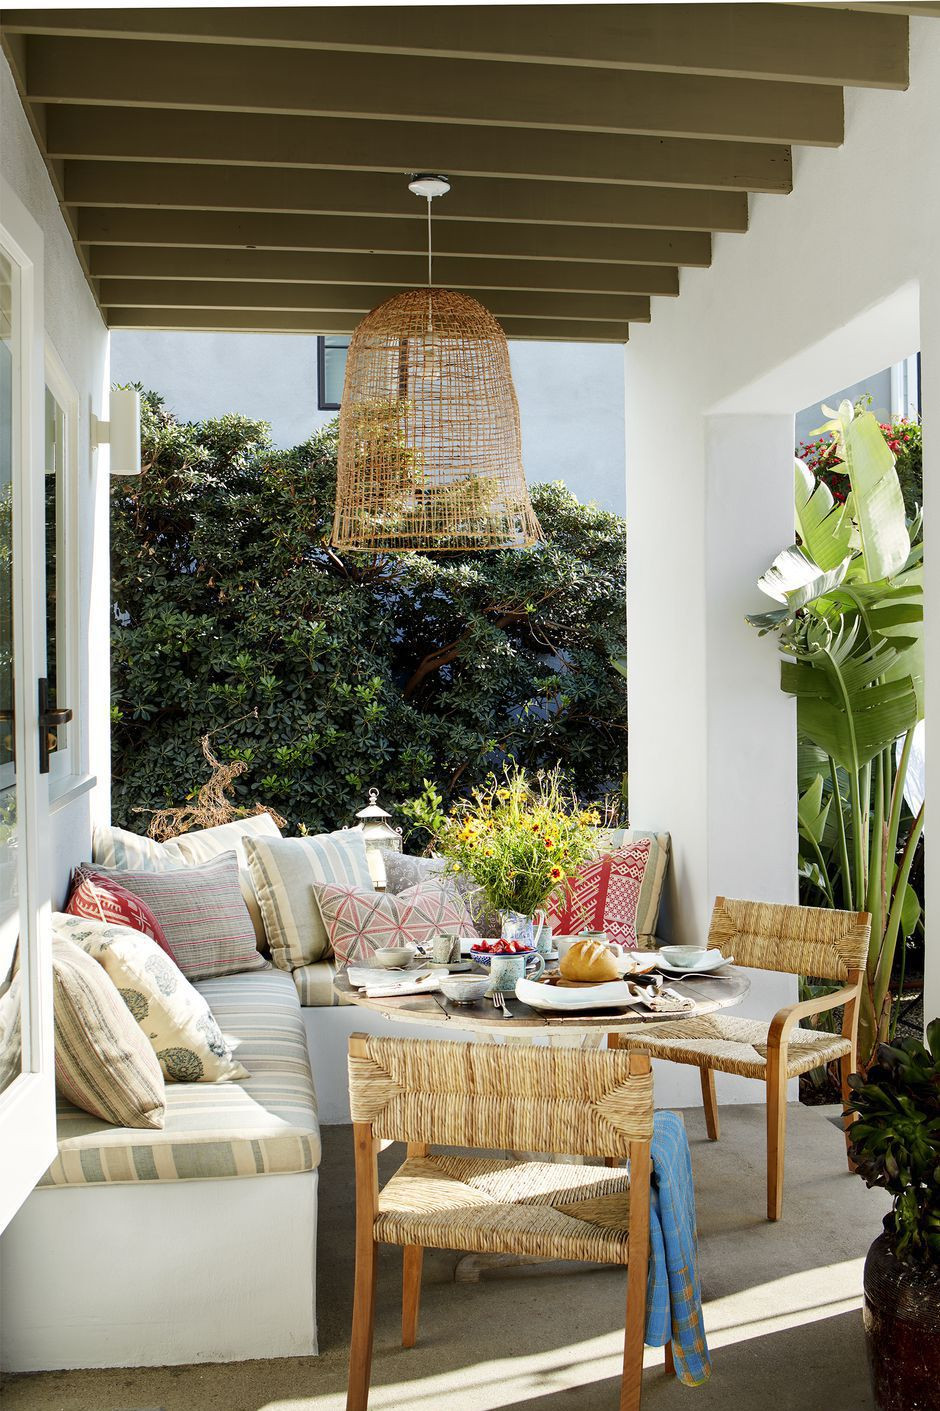 Outdoor room with cushions